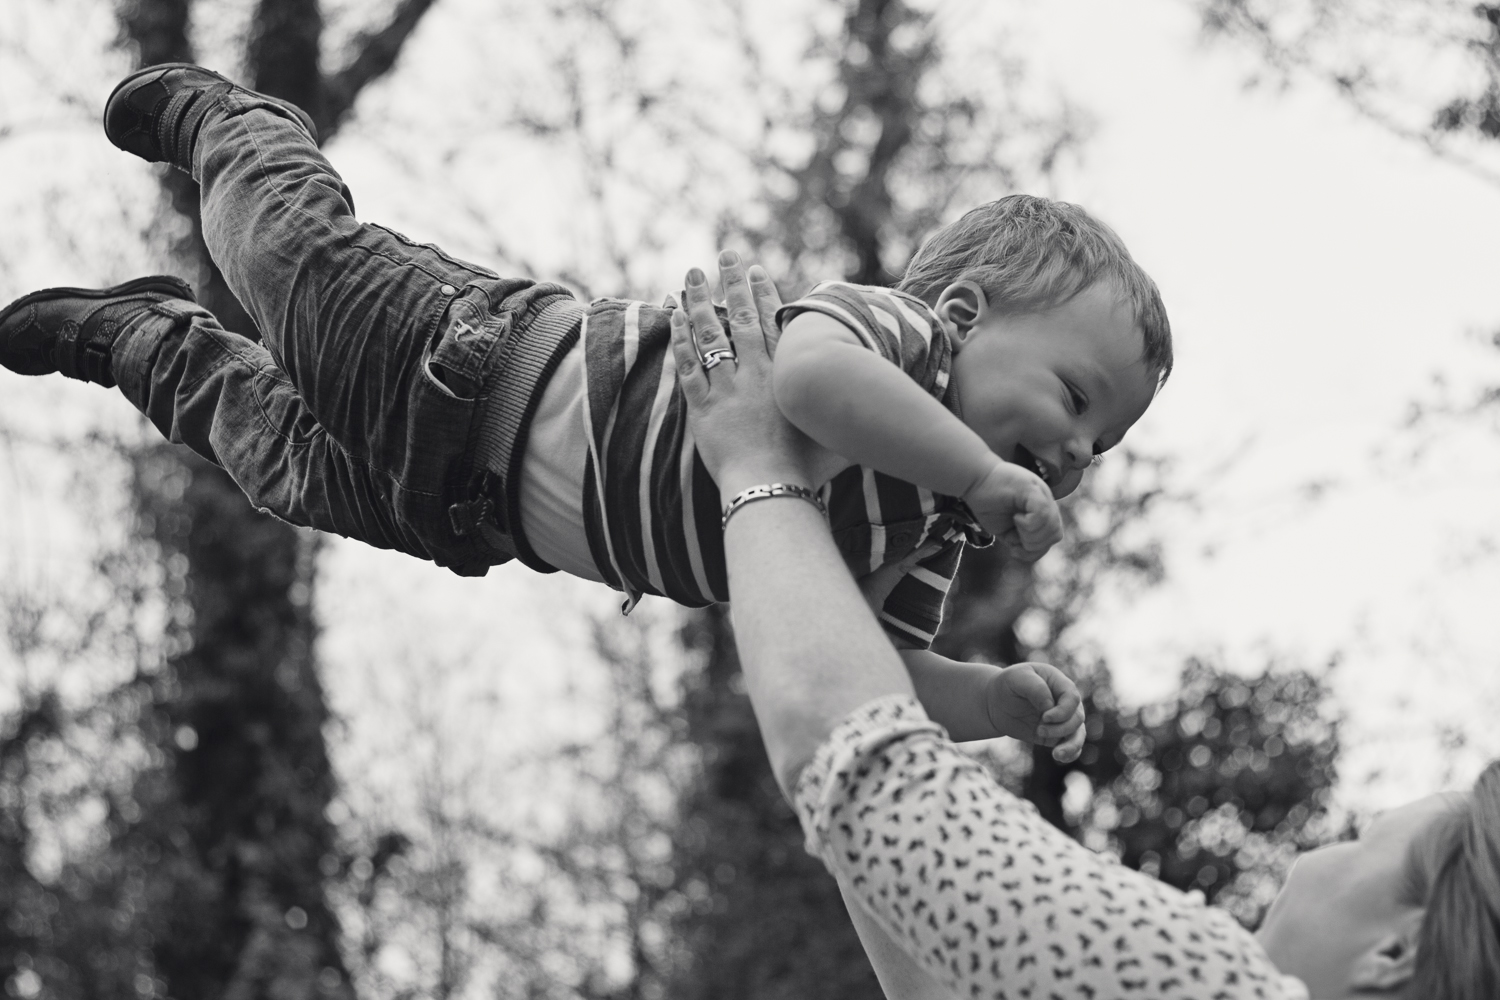 Photograph of a little boy being raised up in the air by his mama